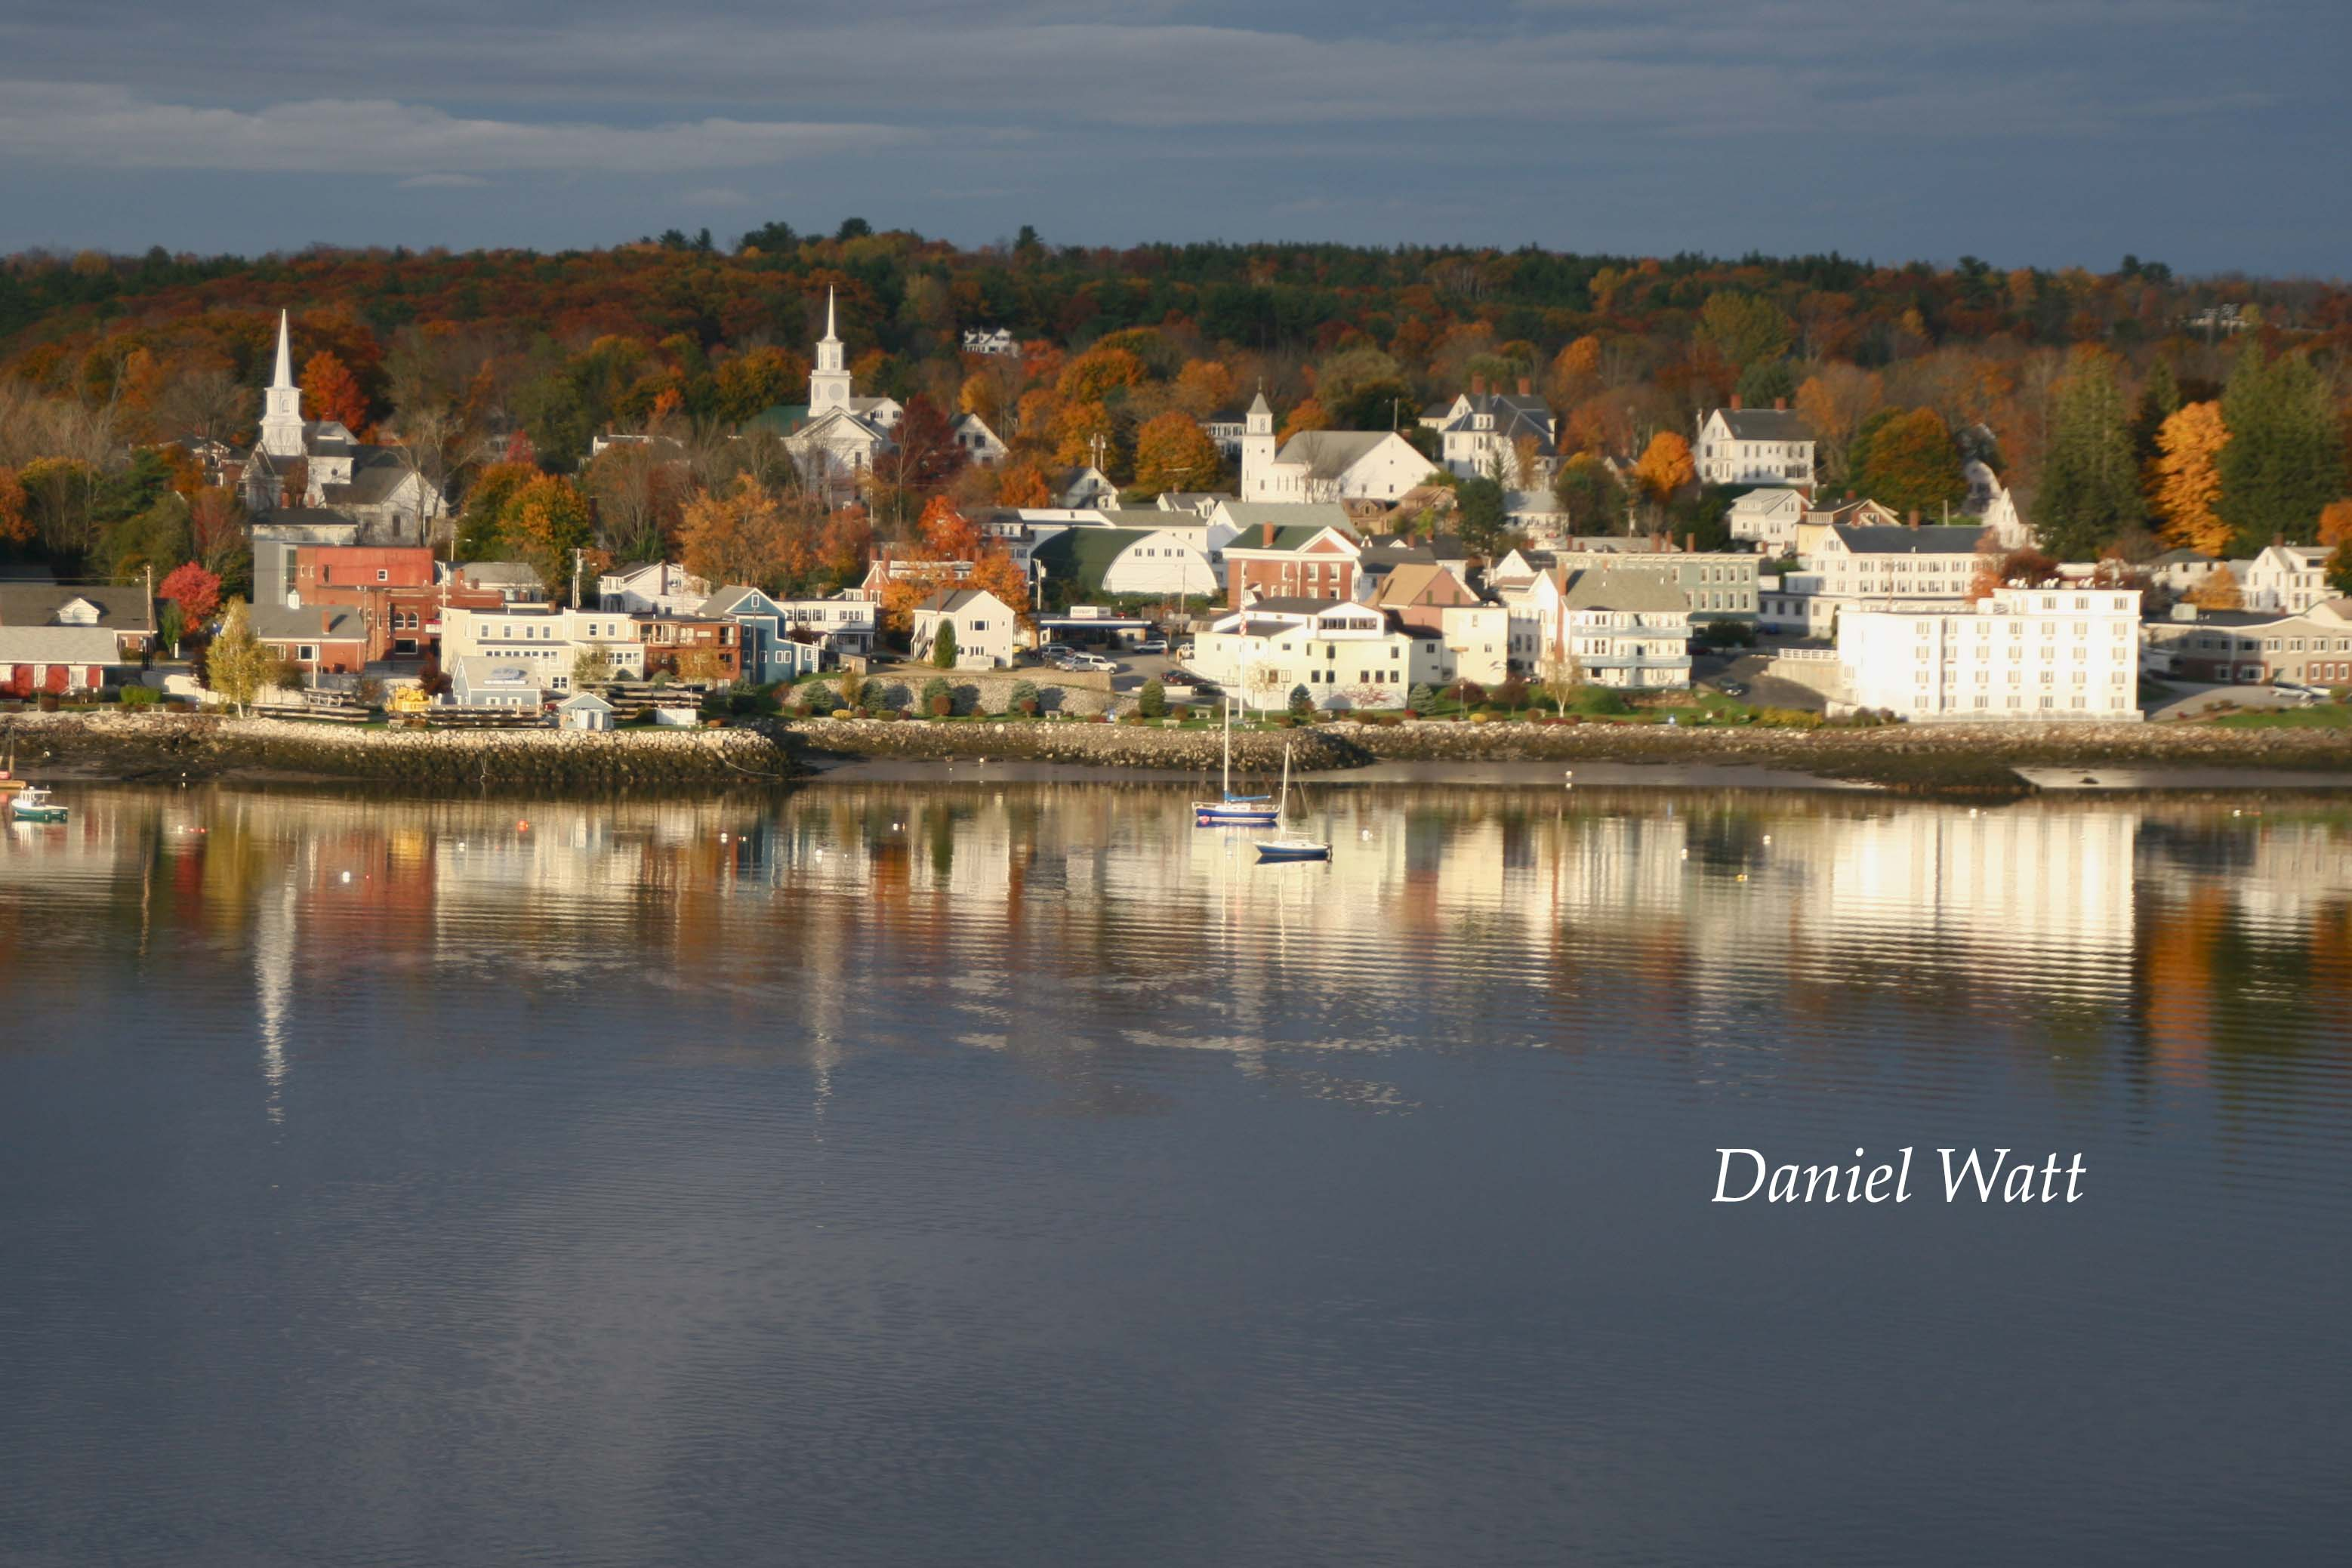 The Bucksport Motor Inn Overlooking Pescot River Is Centrally Located To Some Of Maine S Most Frequently Visited Coastal Towns